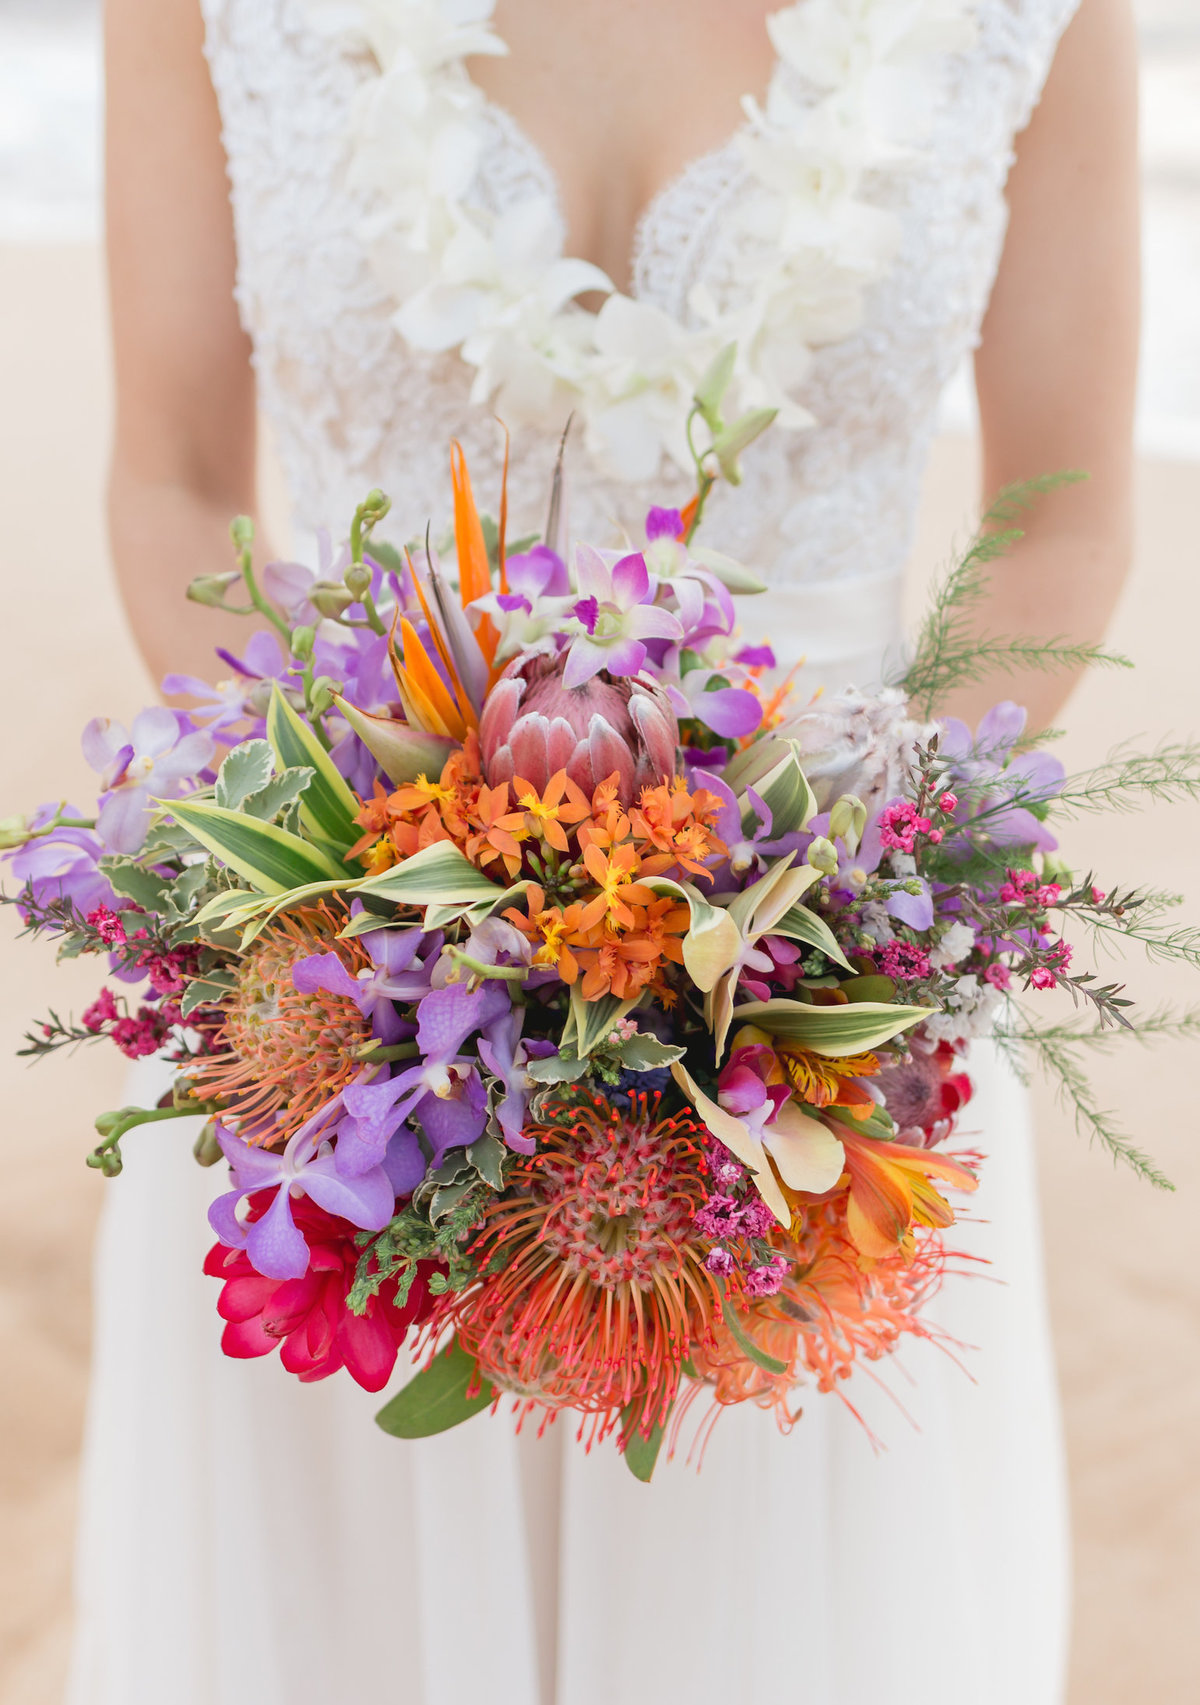 View Beautiful Maui Wedding Flowers And Bouquets In Hawaii